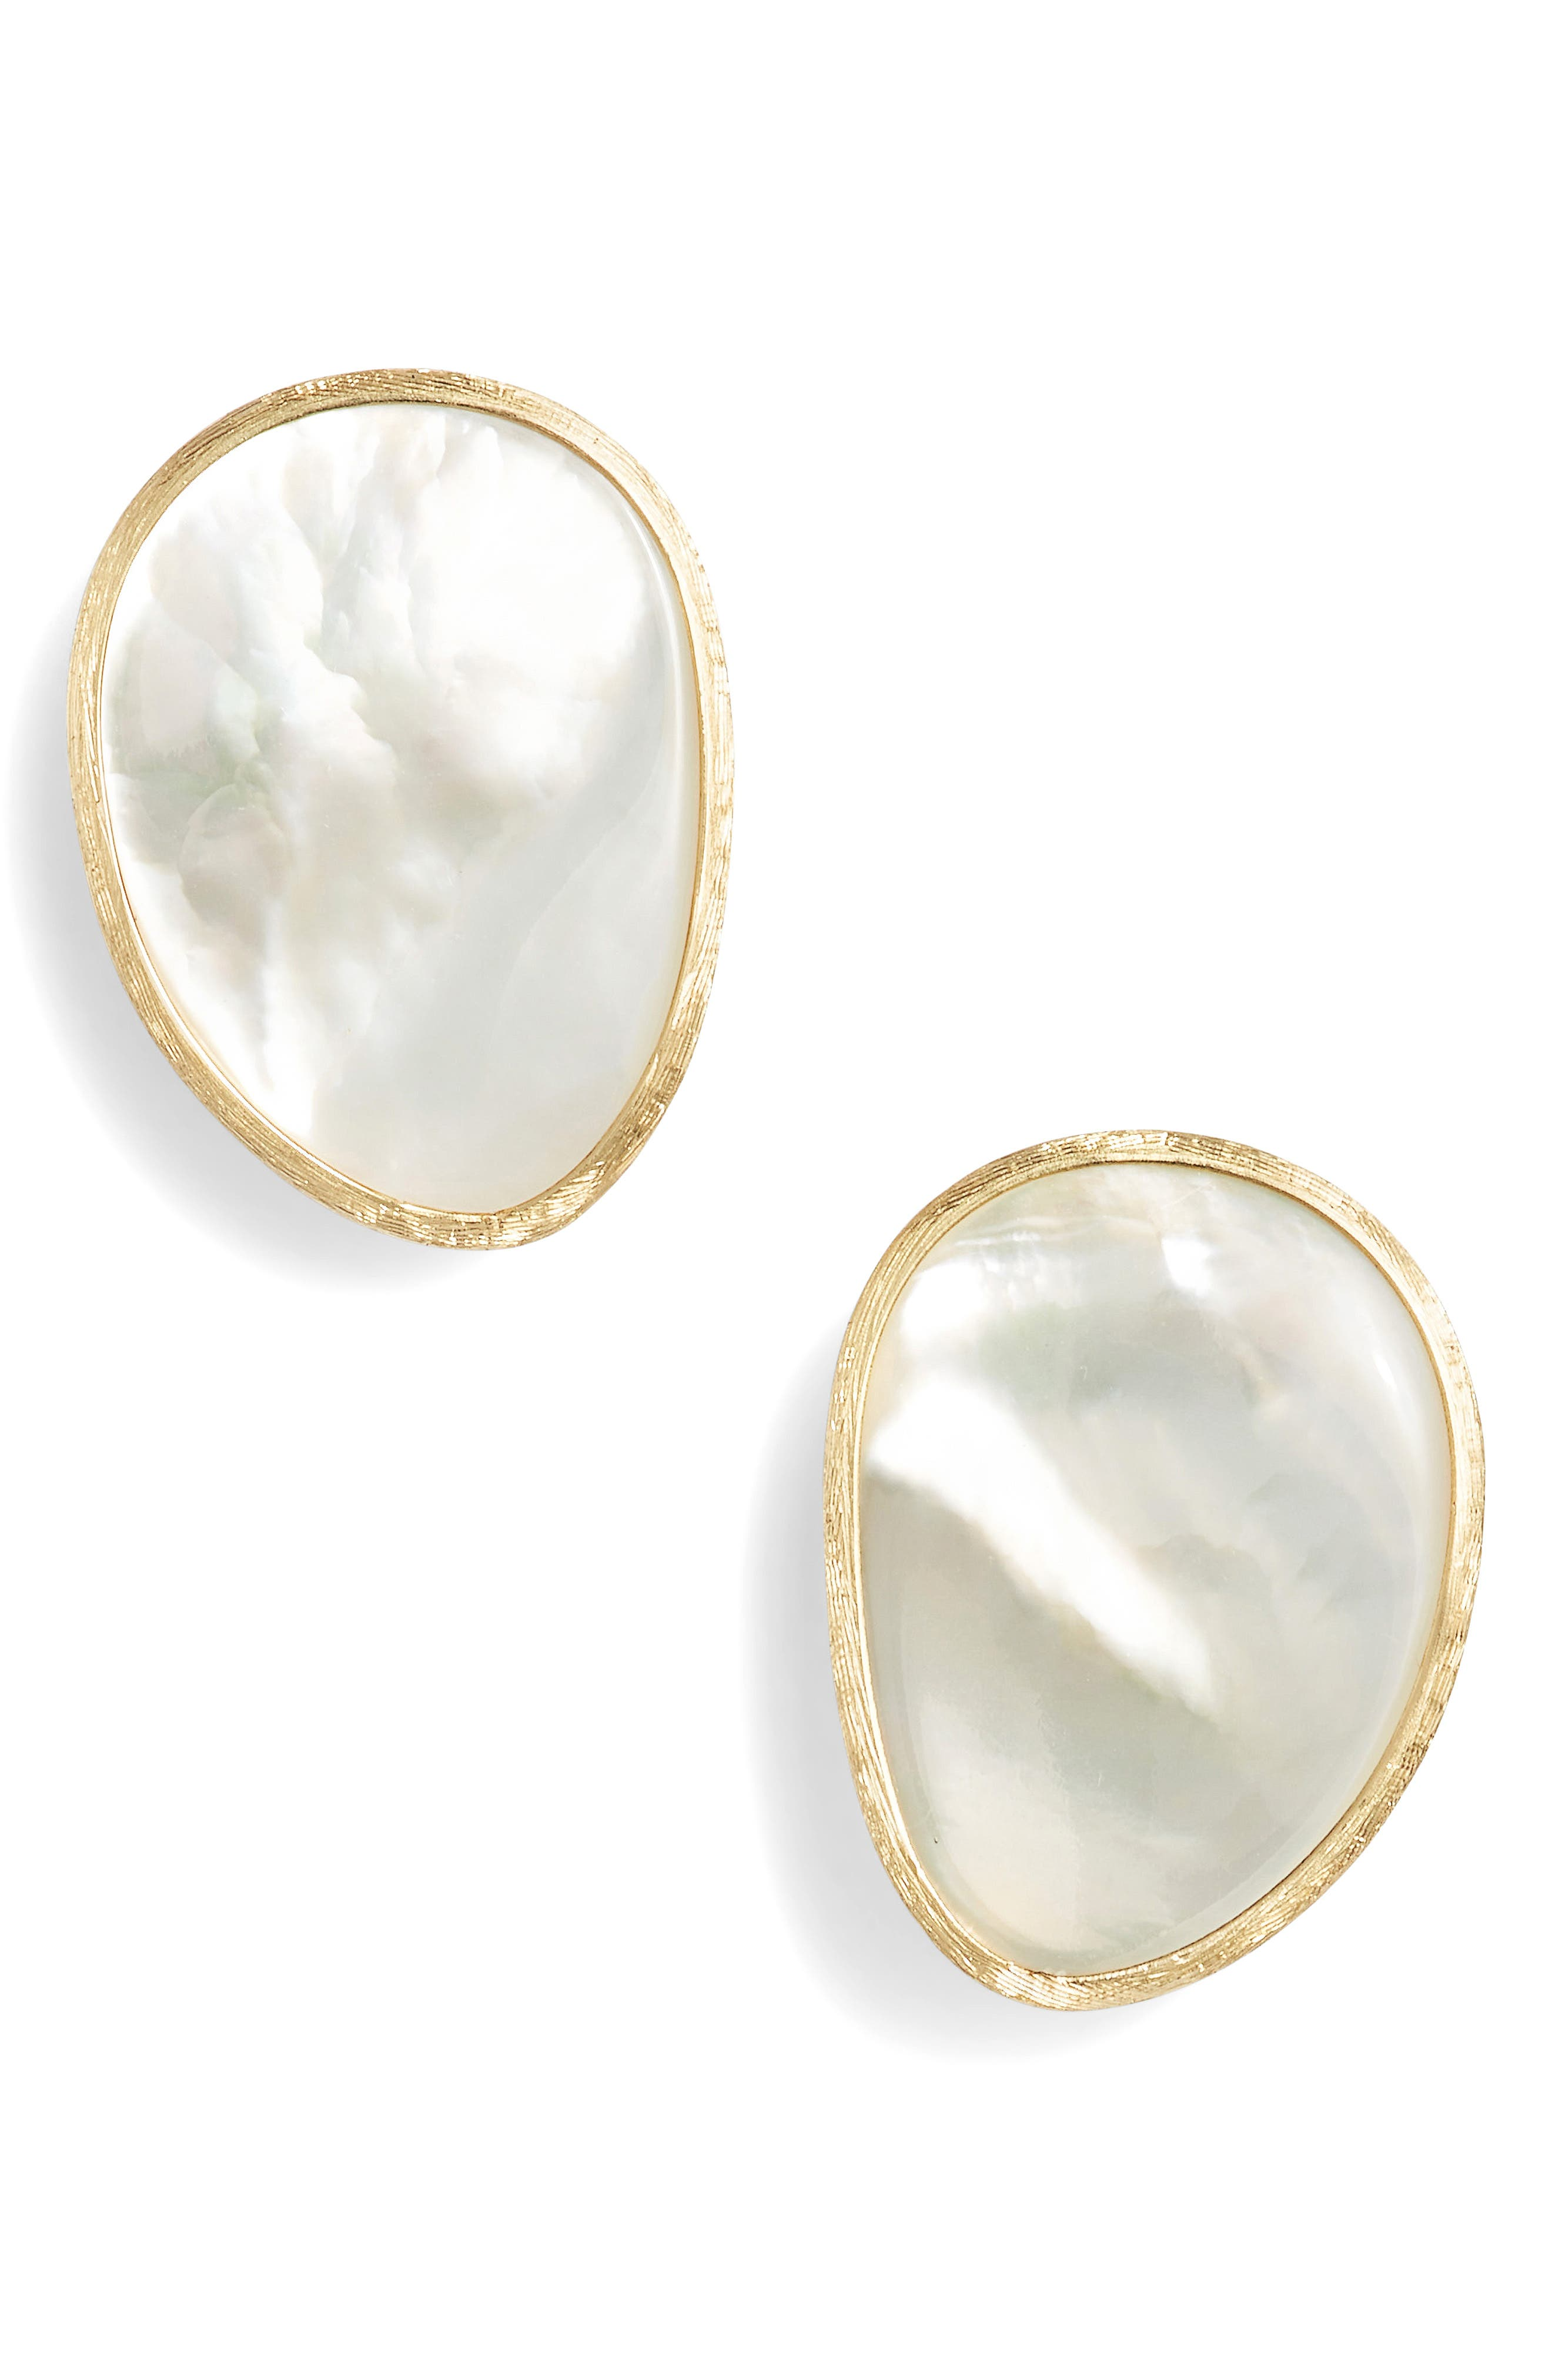 Lunaria Pearl Stud Earrings,                             Main thumbnail 1, color,                             White Mother Of Pearl